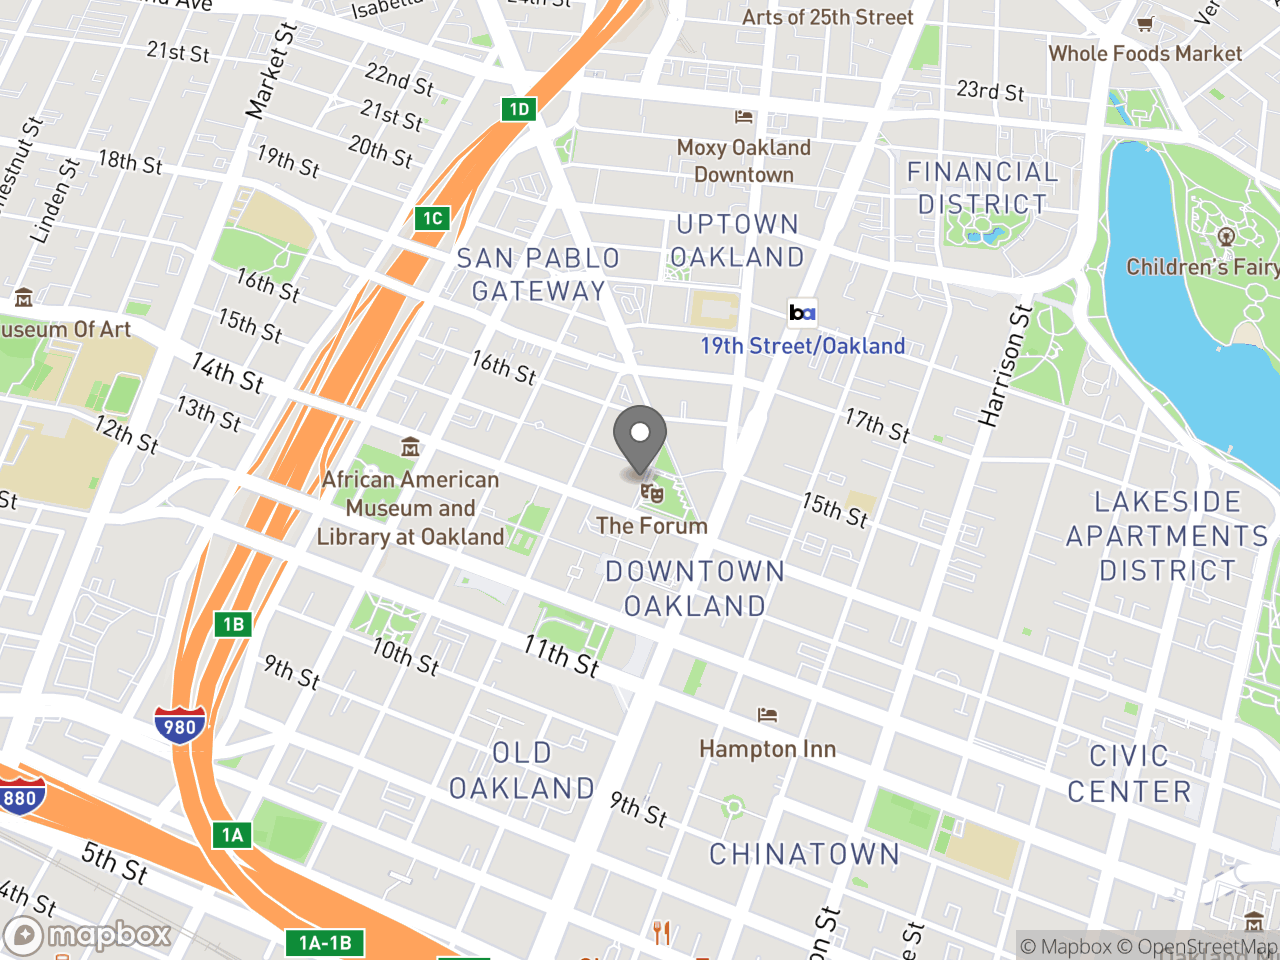 Map location for August 12, 2019 Landmarks Preservation Advisory Board Meeting, located at 1 Frank H Ogawa Plaza in Oakland, CA 94612